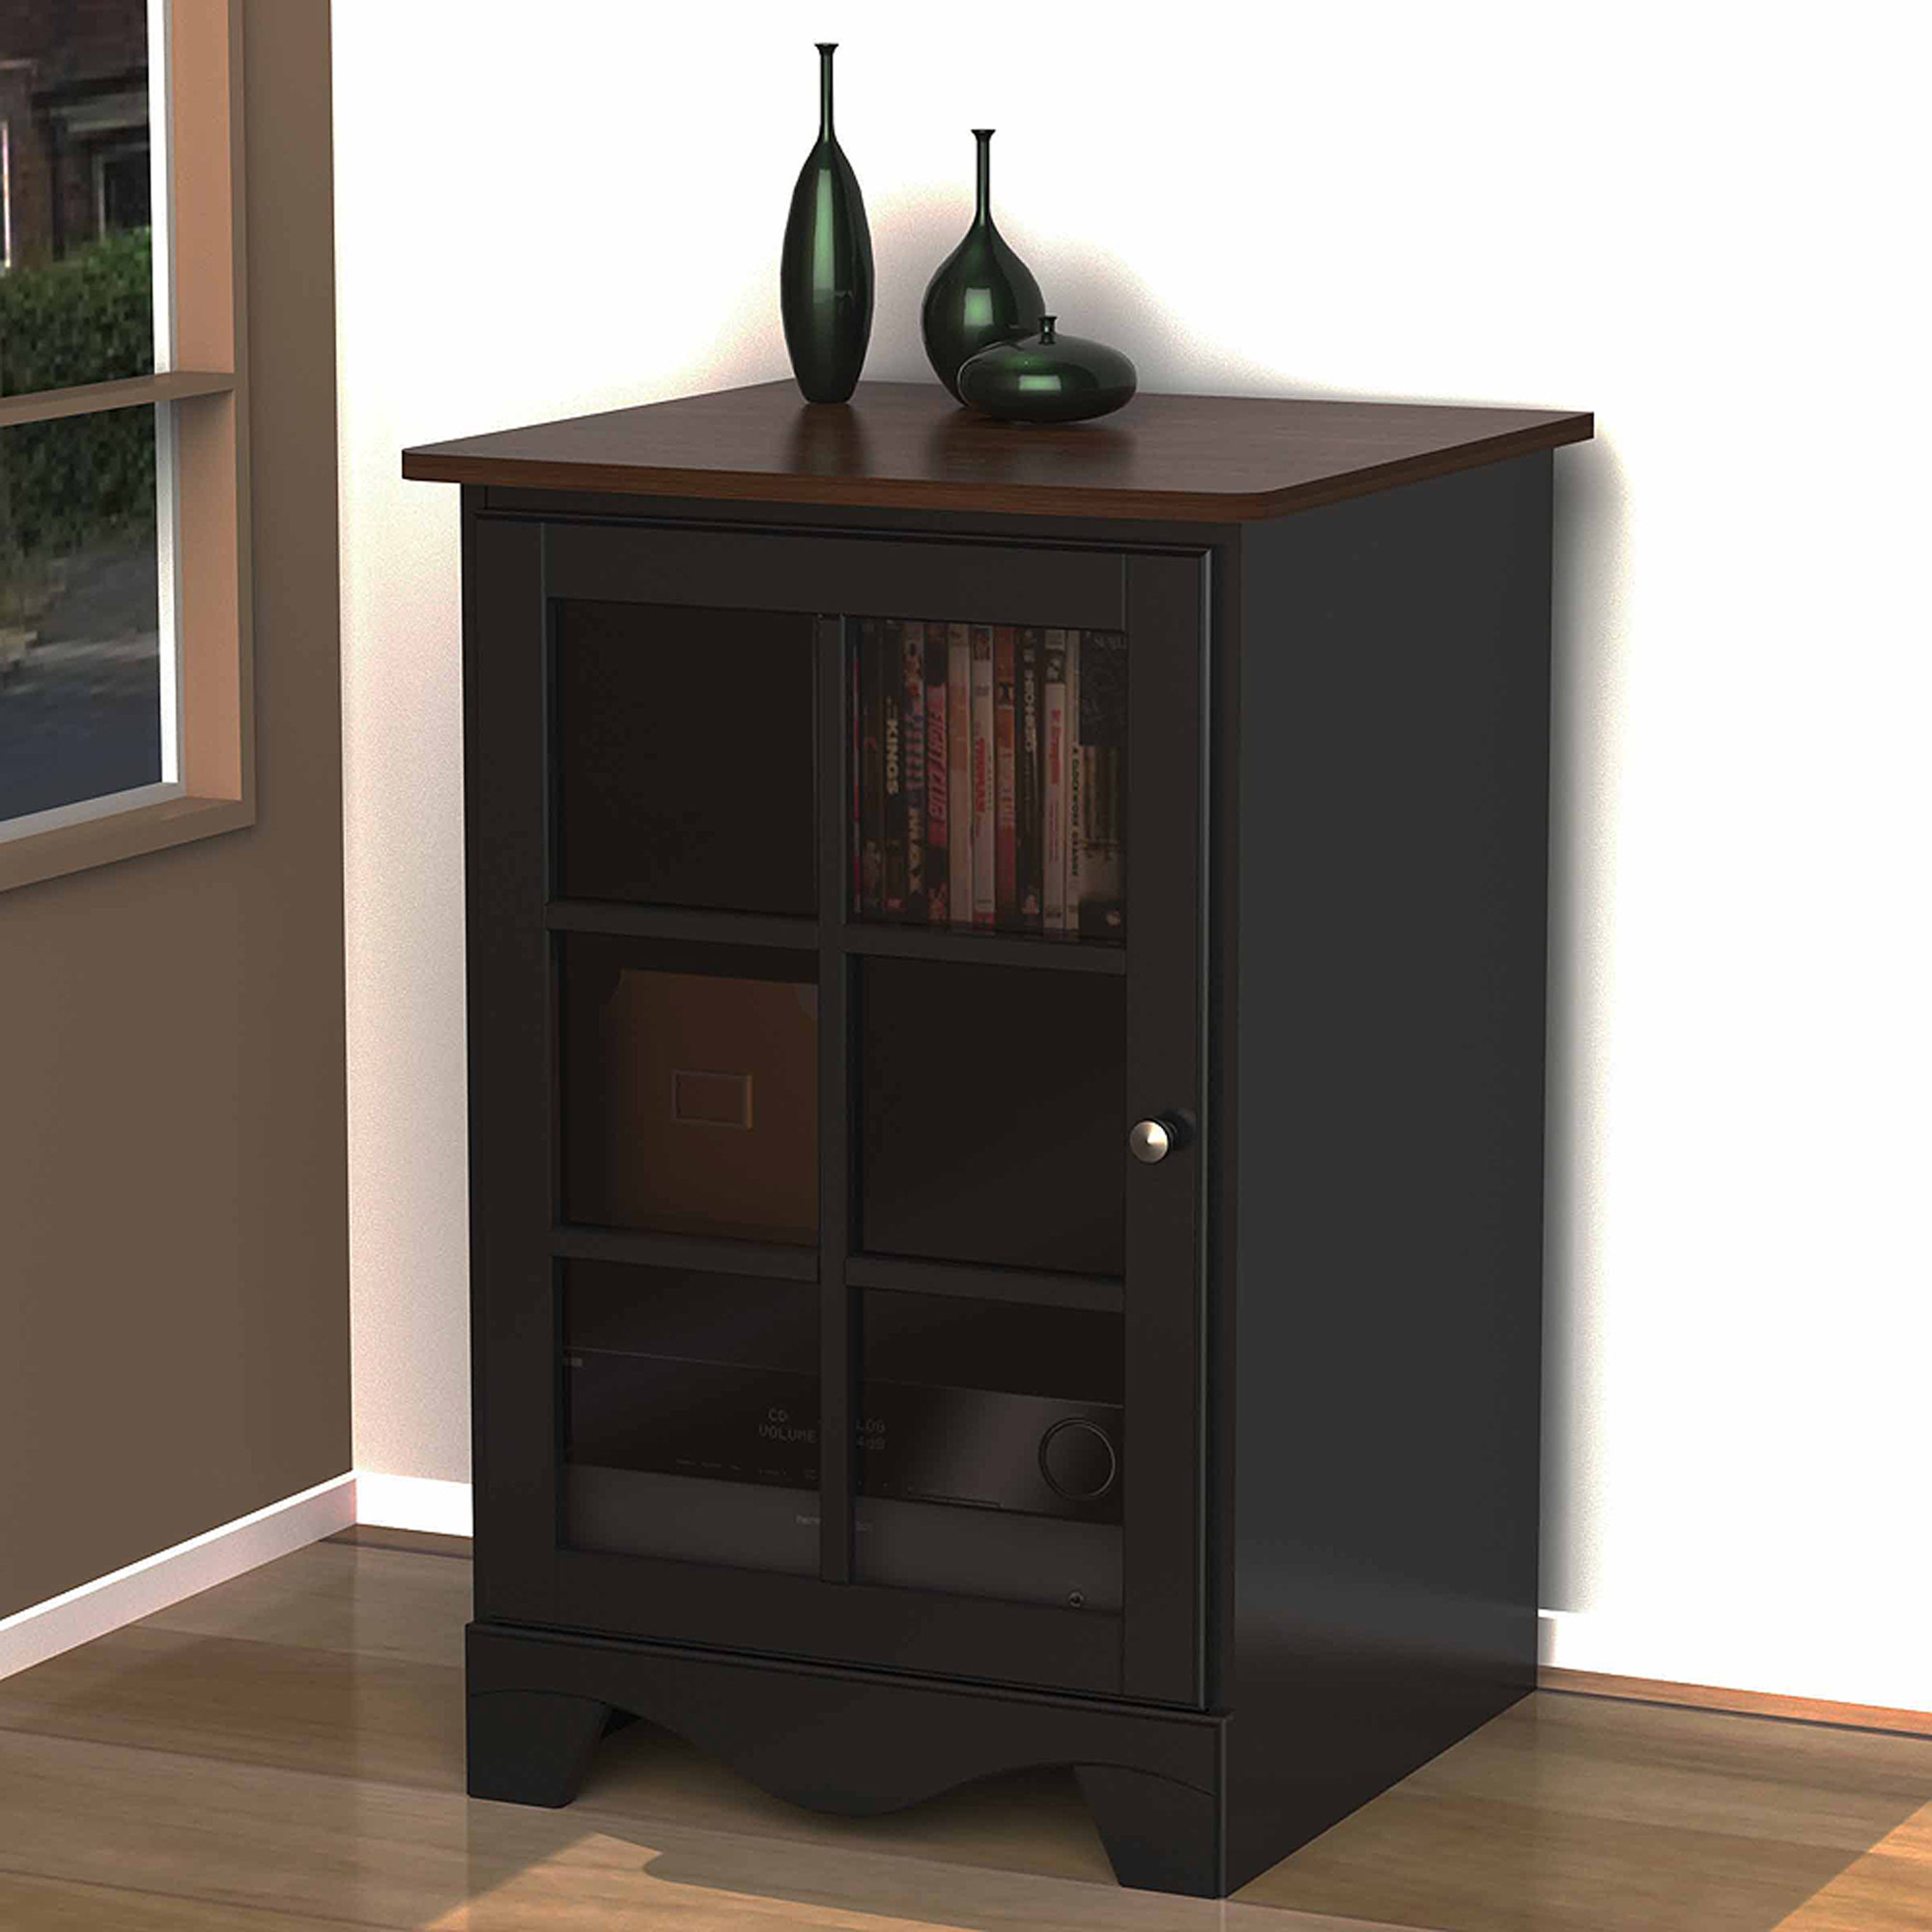 Nexera Pinnacle Cinnamon/Cherry/Black 1-Door Audio Tower